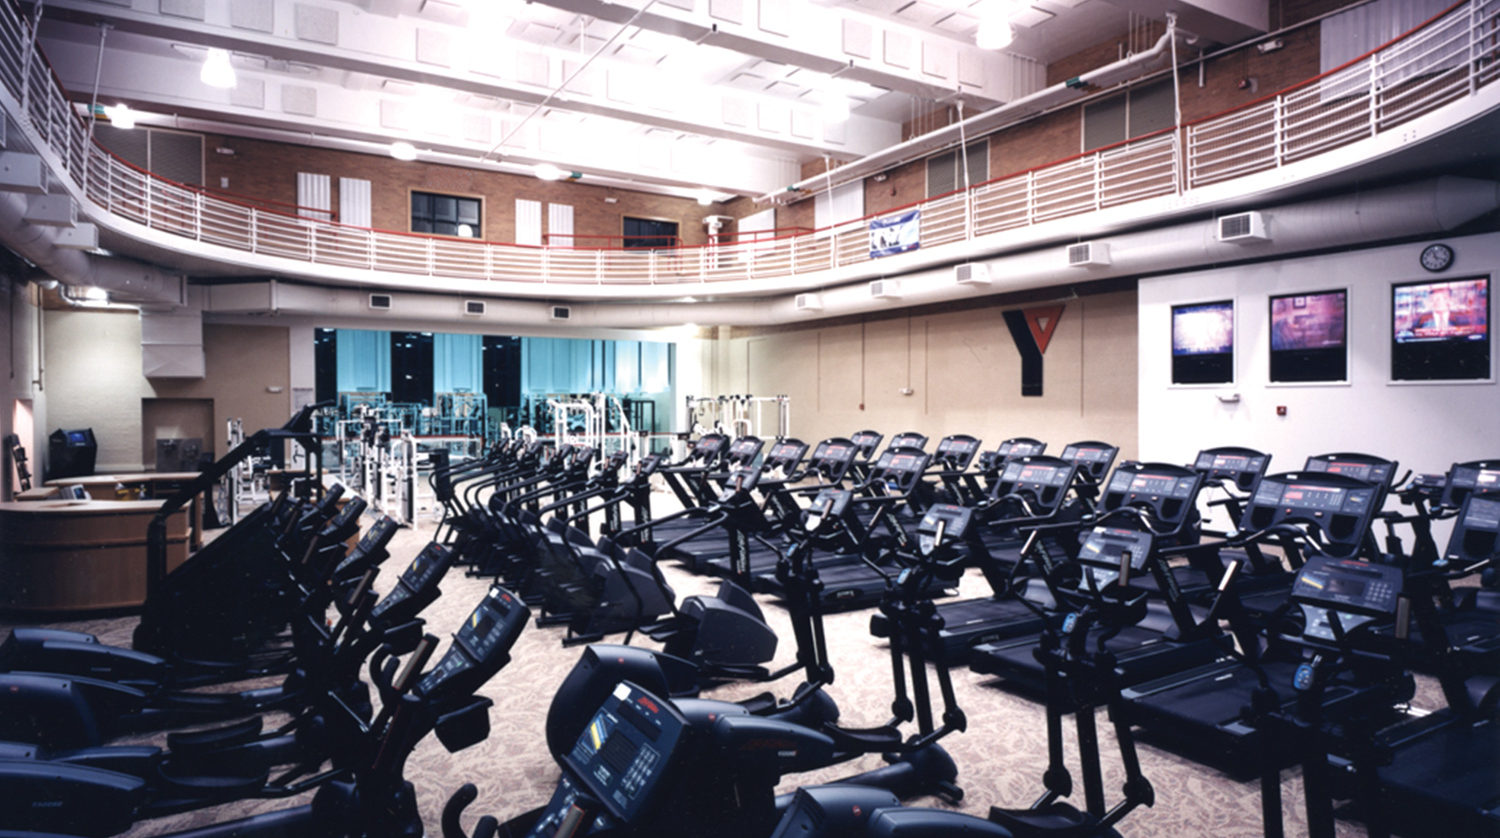 McGaw YMCA exercise machines